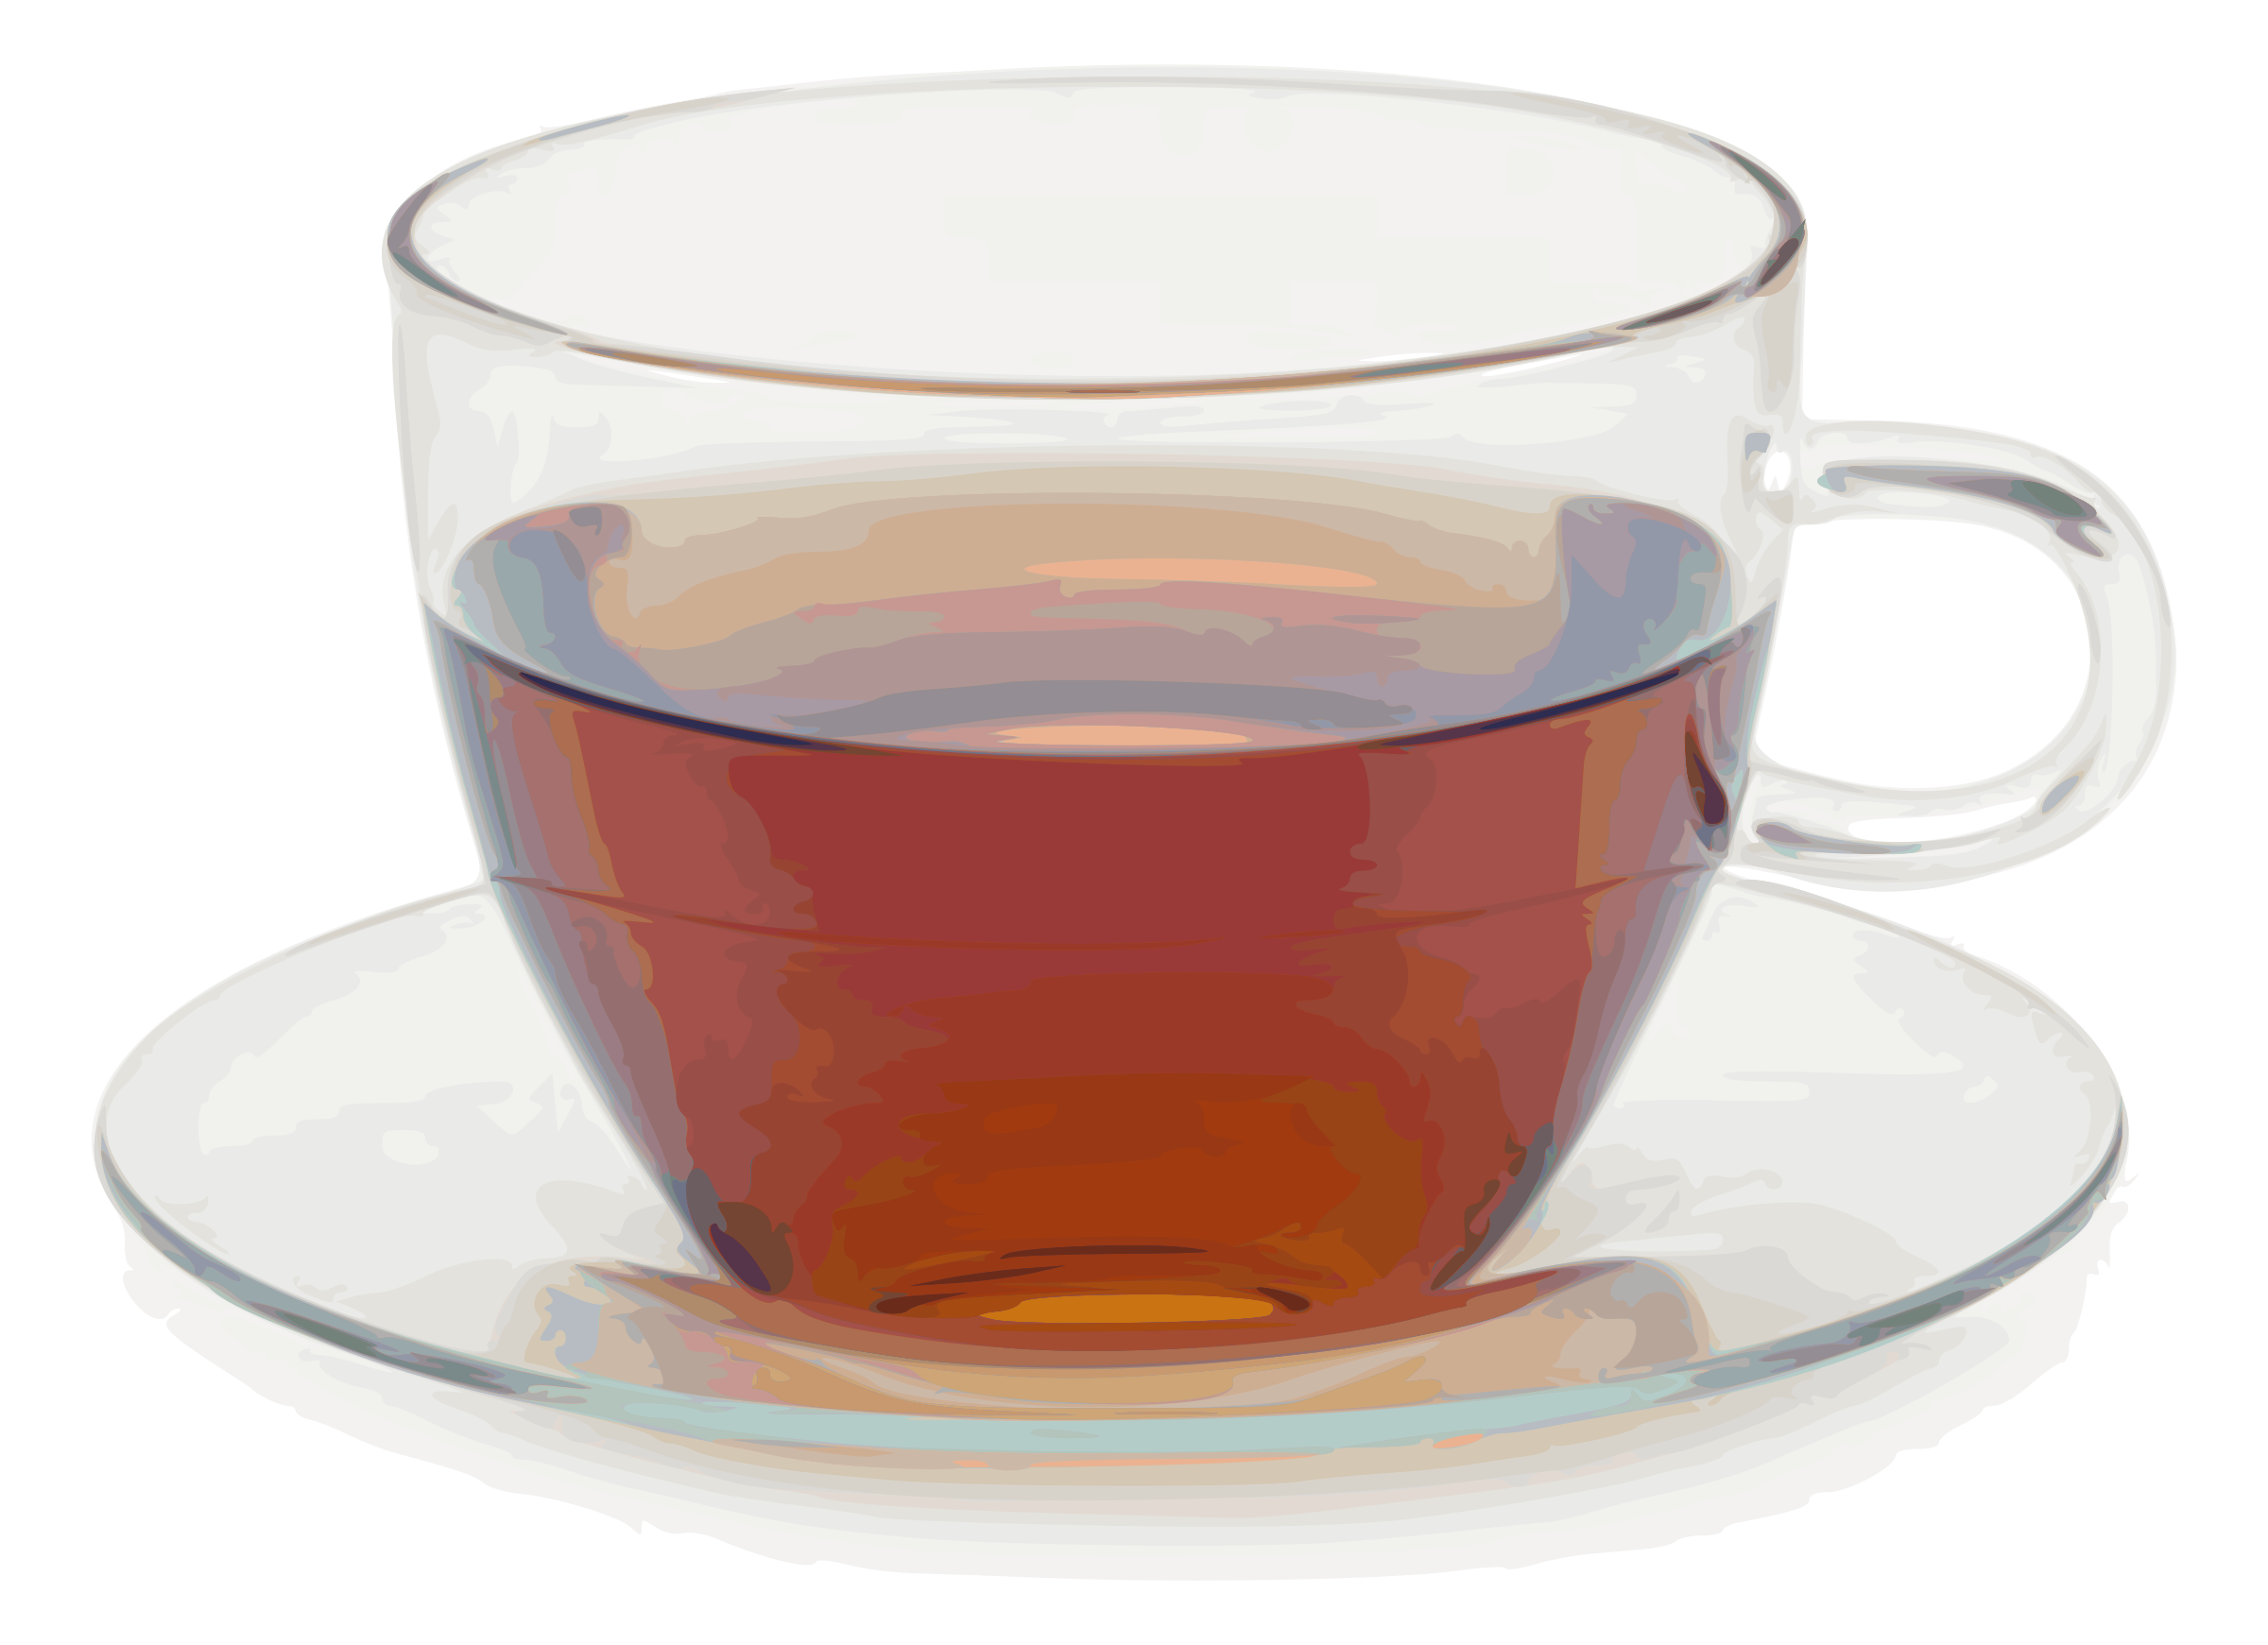 Drinks clipart cup hot tea. Png images free download